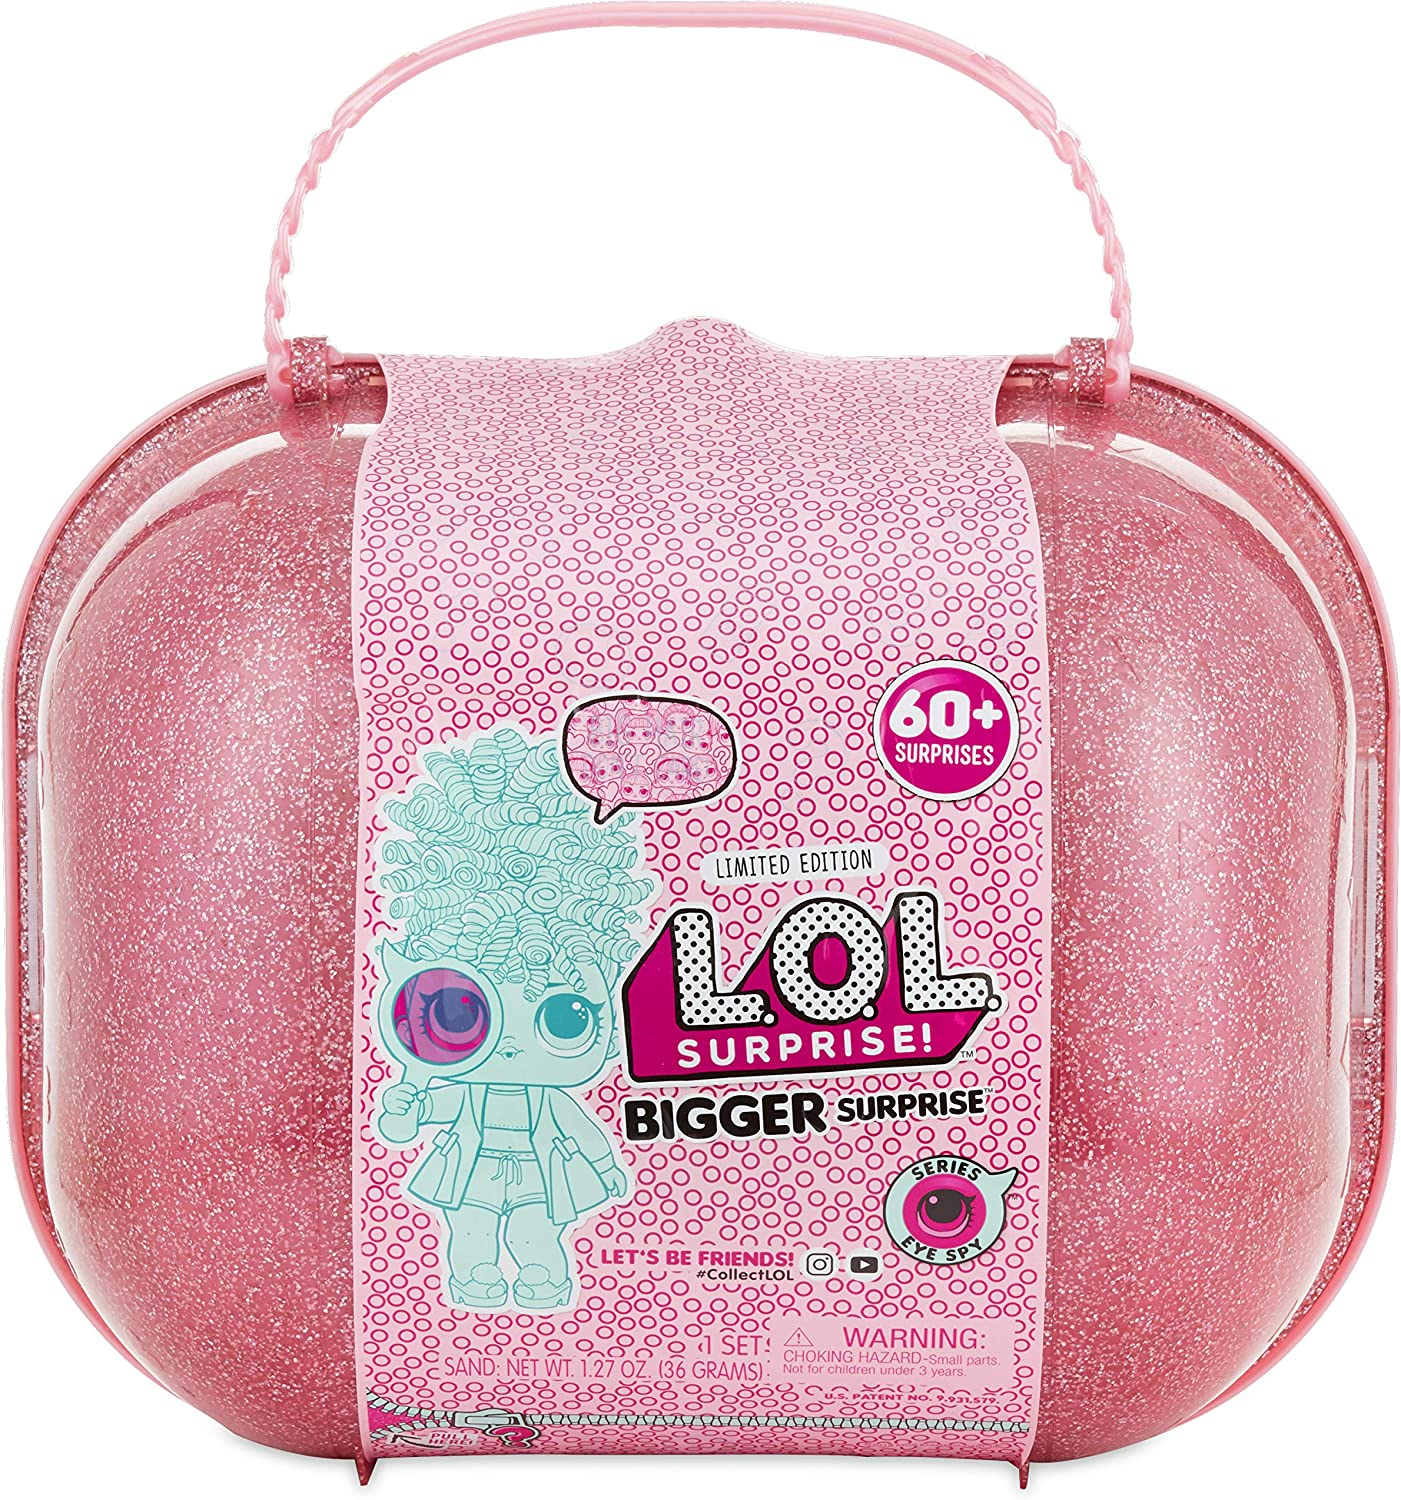 Save Up to 20% off L.O.L. Surprise! Dolls at Amazon